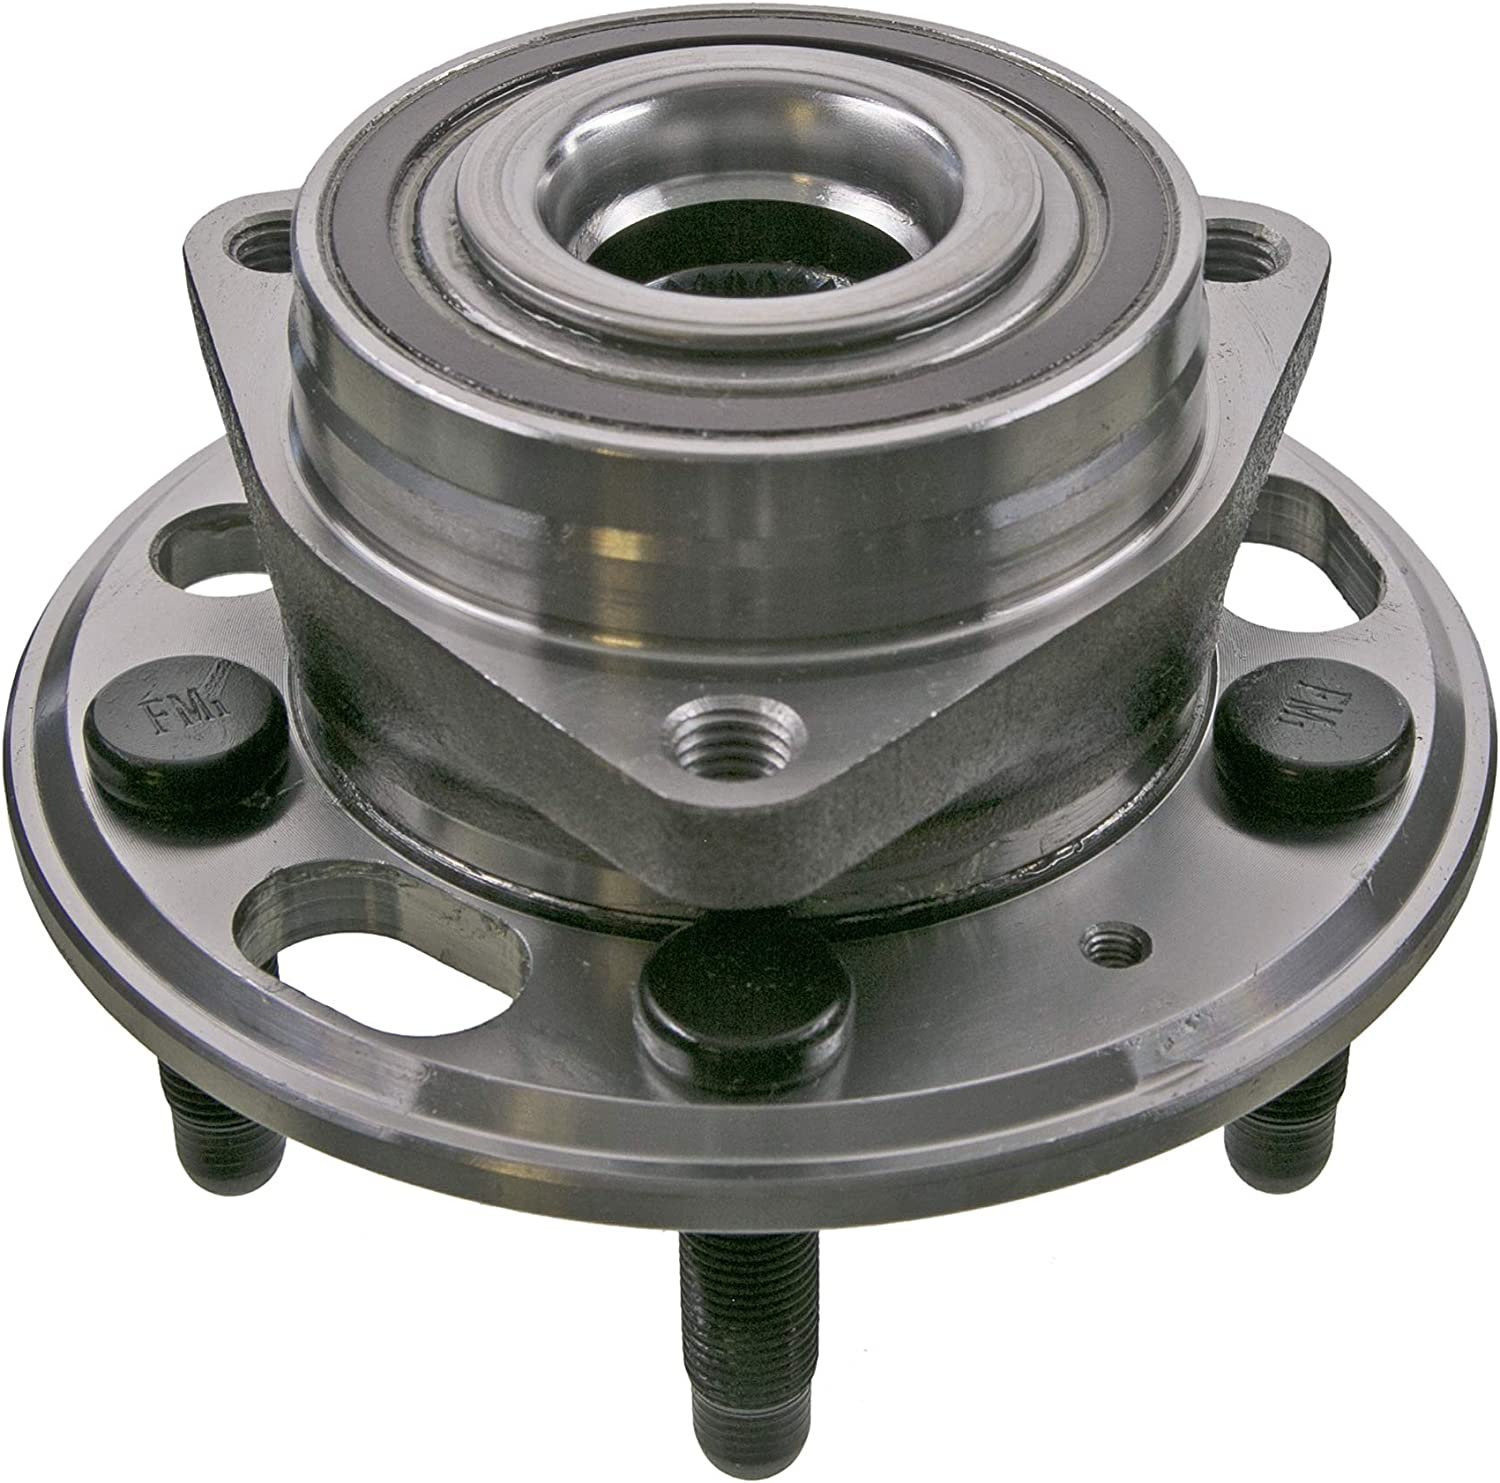 At the price of surprise Cheap mail order specialty store MOOG 513288 Wheel Bearing Assembly Hub and